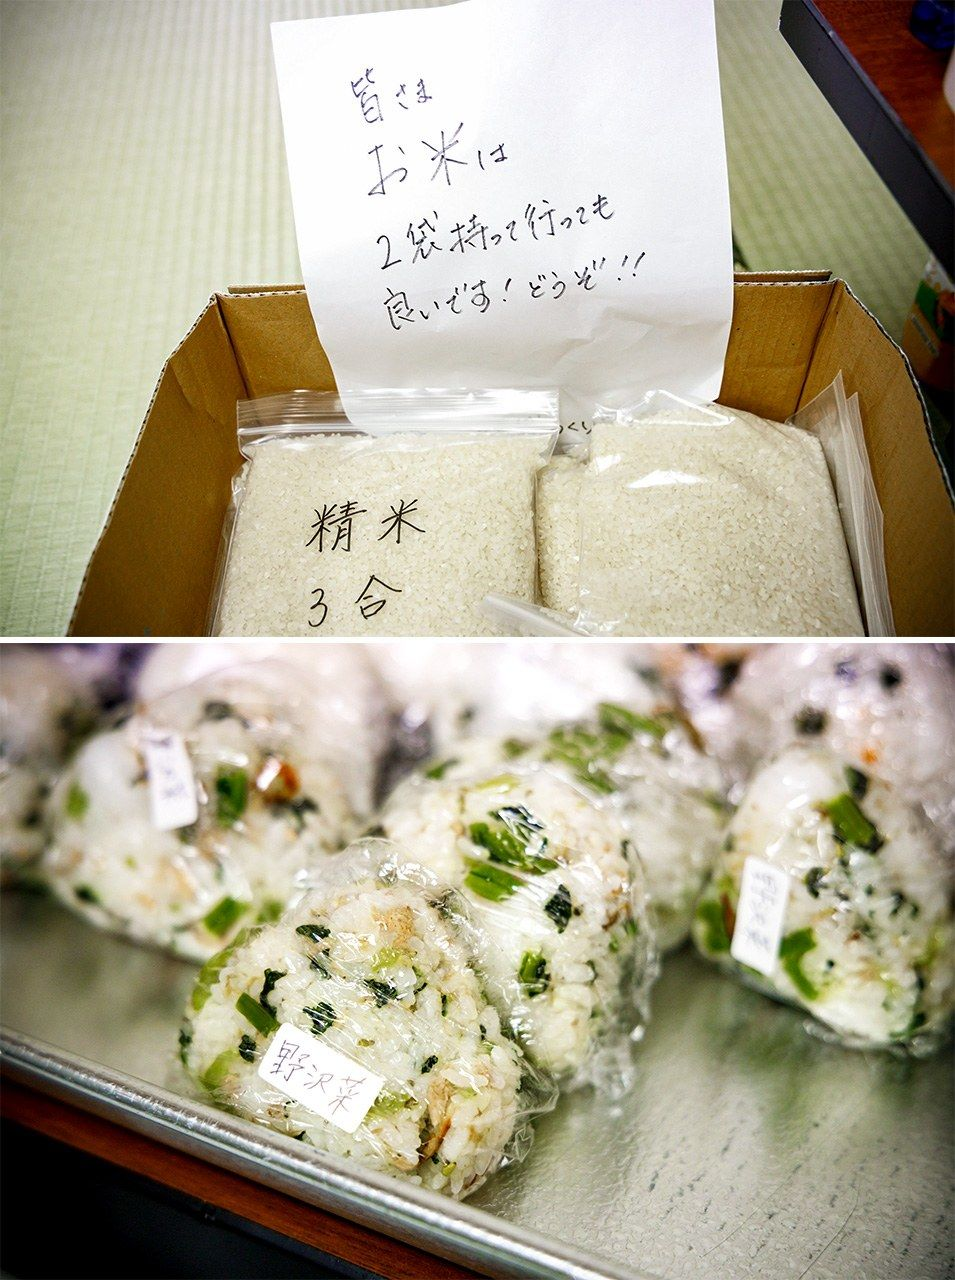 Bags of rice and homemade rice balls set out for cafeteria diners to take home.